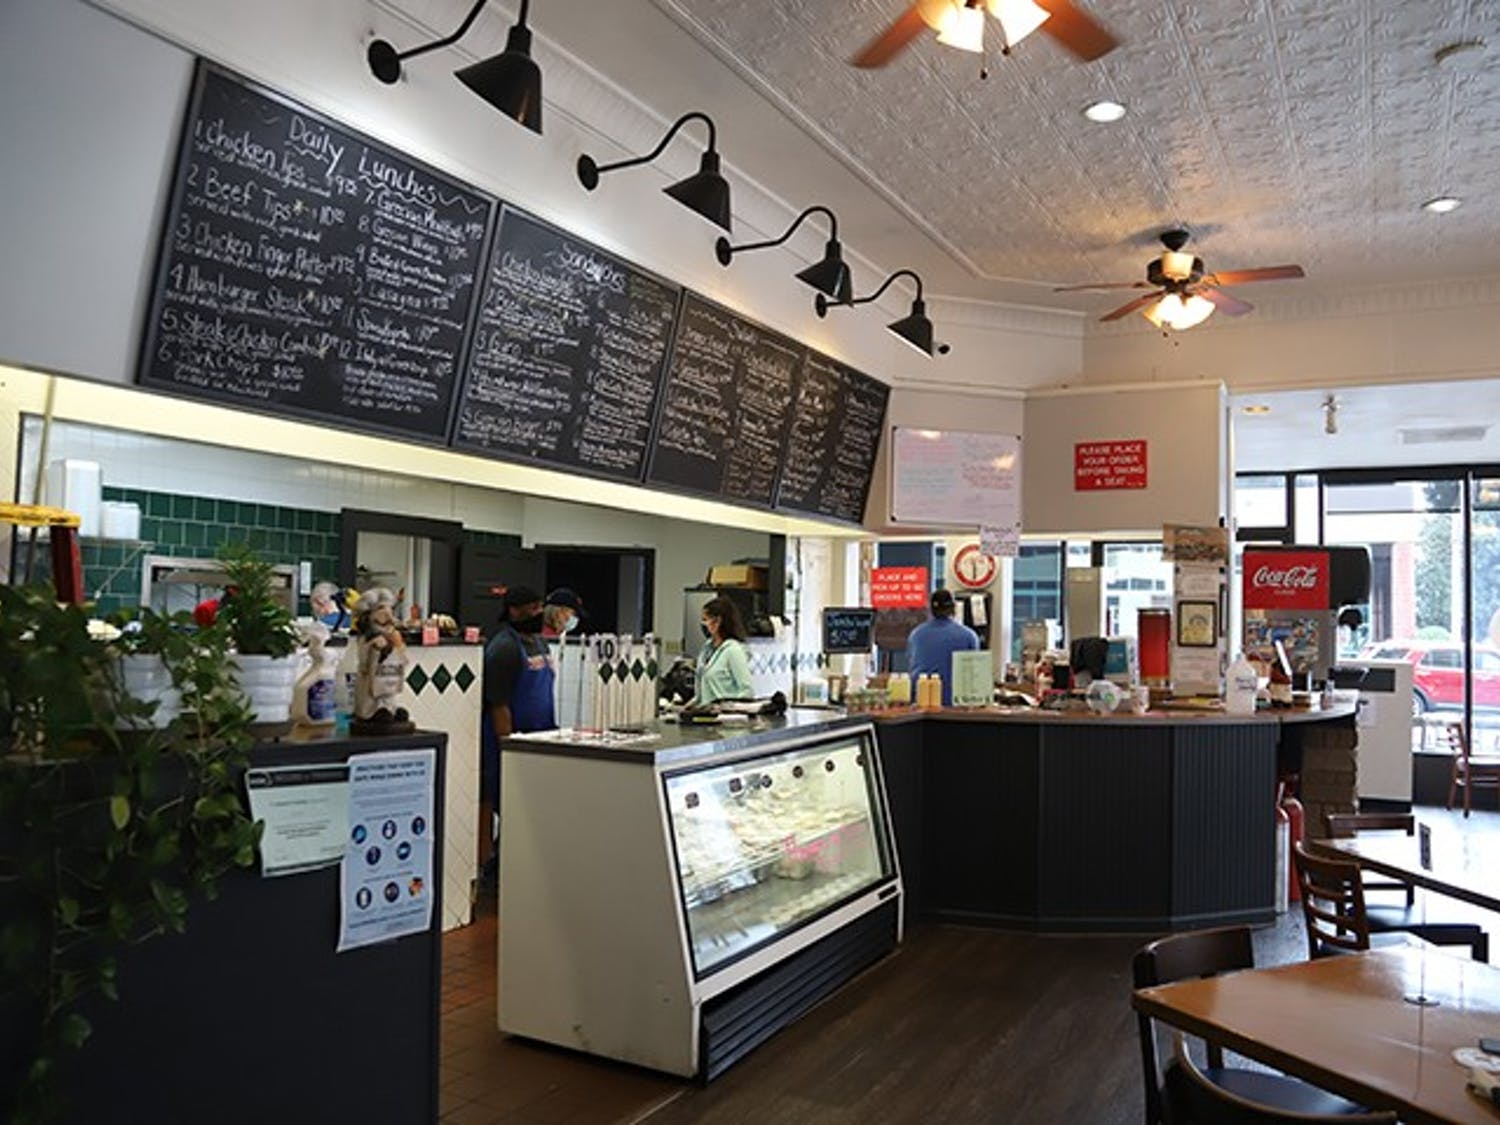 The inside counter, right below a row of menus where customers will place their orders. The restaurant provides both indoor and outdoor seating.